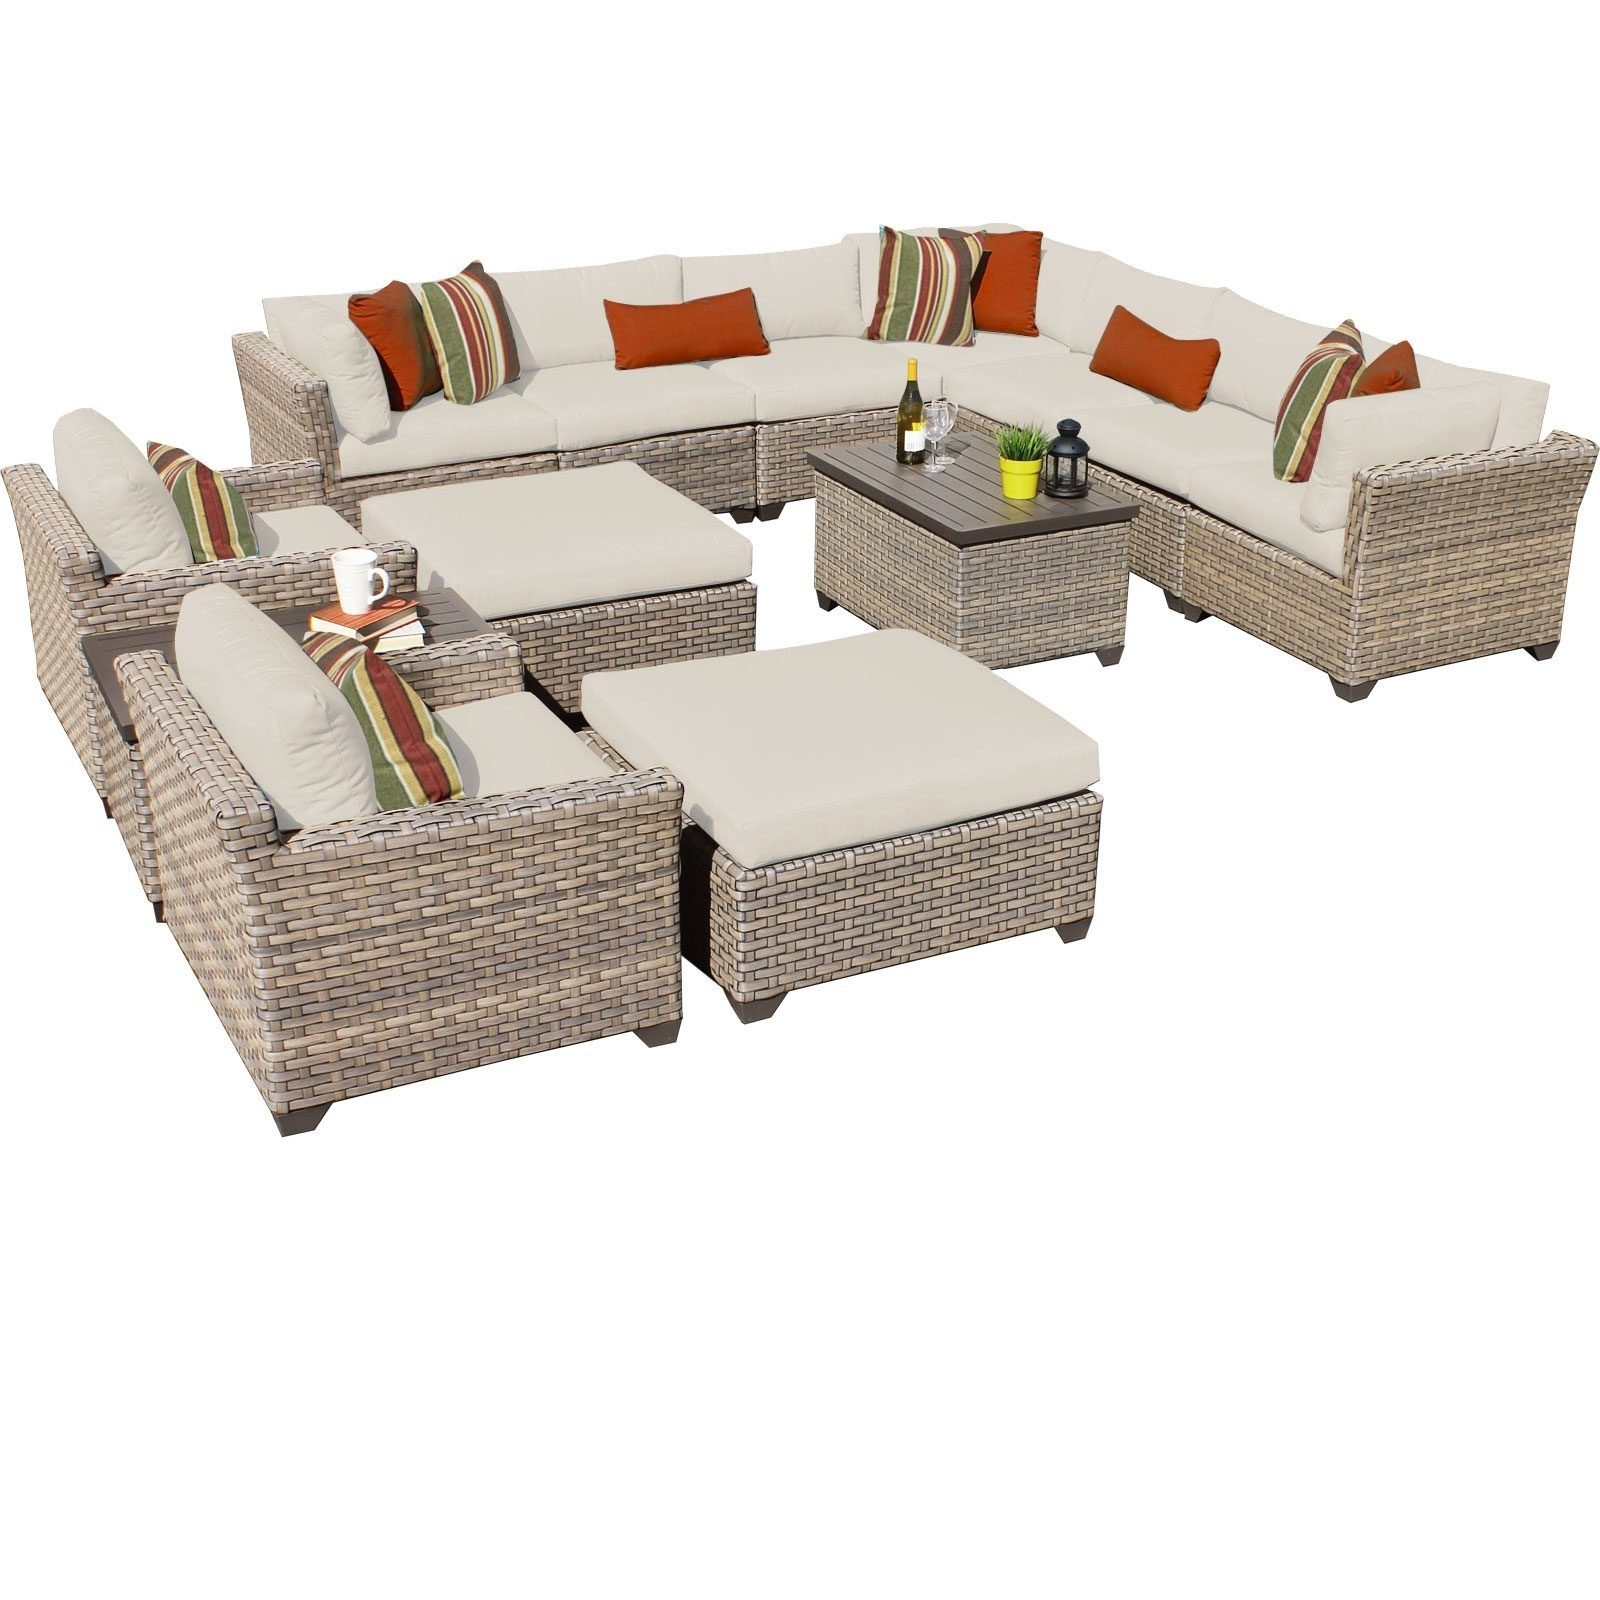 Walmart Patio Furniture Conversation Sets Within Widely Used 30 Luxury Walmart Patio Sets On Sale Ideas (View 18 of 20)